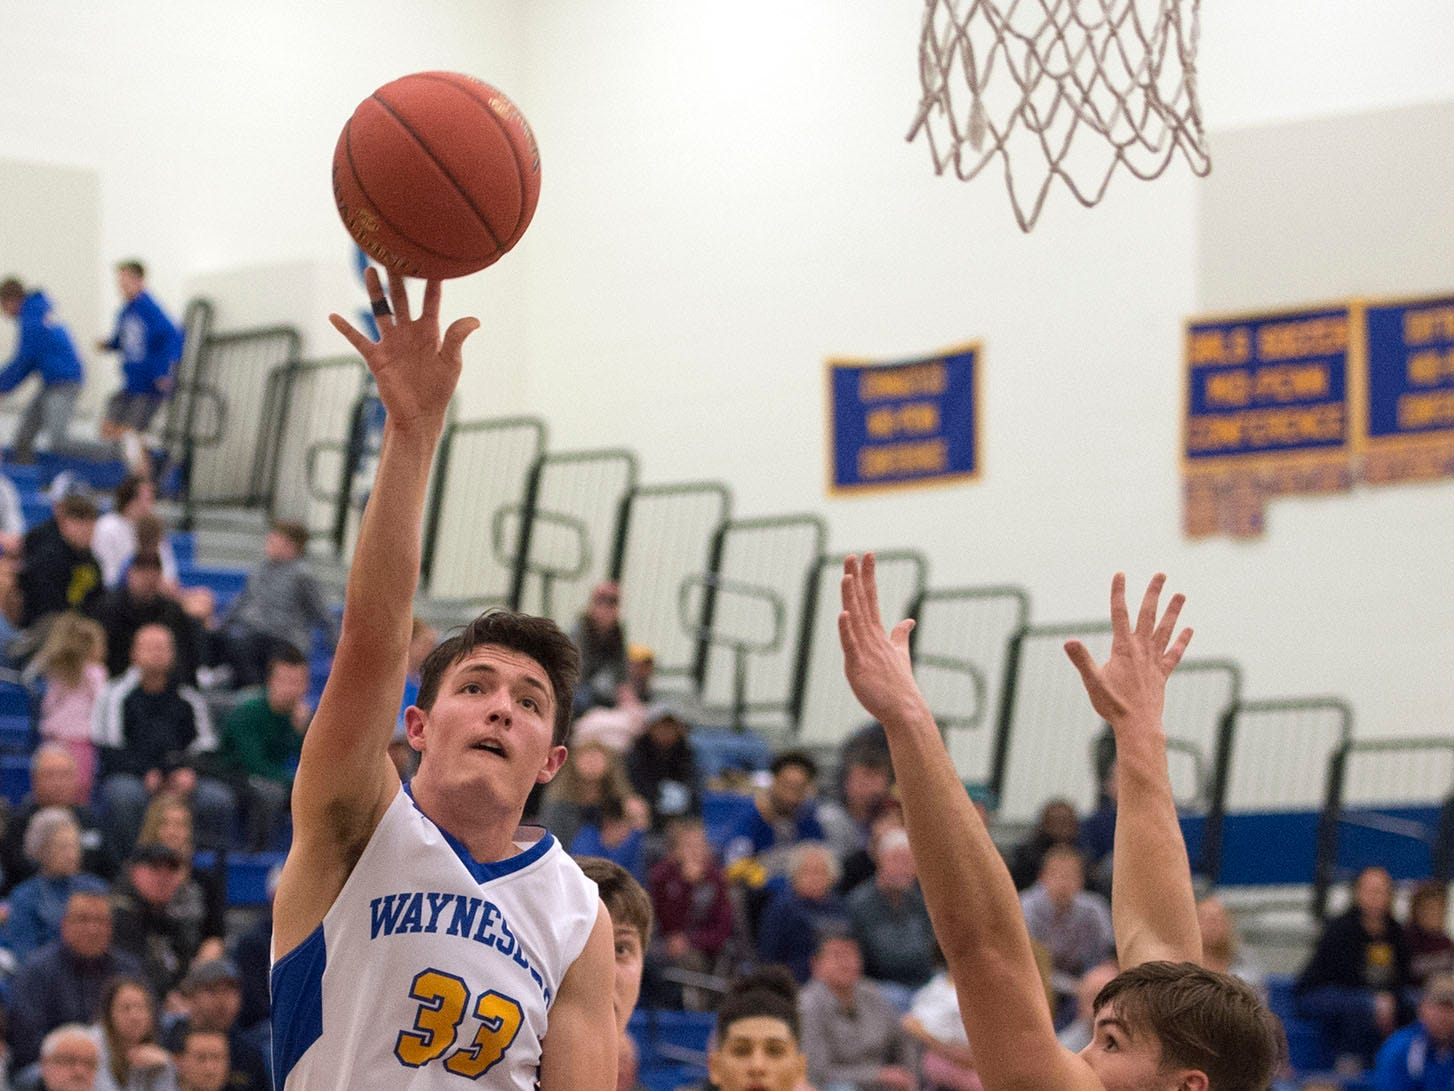 Waynesboro's Hunter Clever (33) shoots on Tuesday, December 18, 2018. Waynesboro defeated Shippensburg 72-59 during a home game.